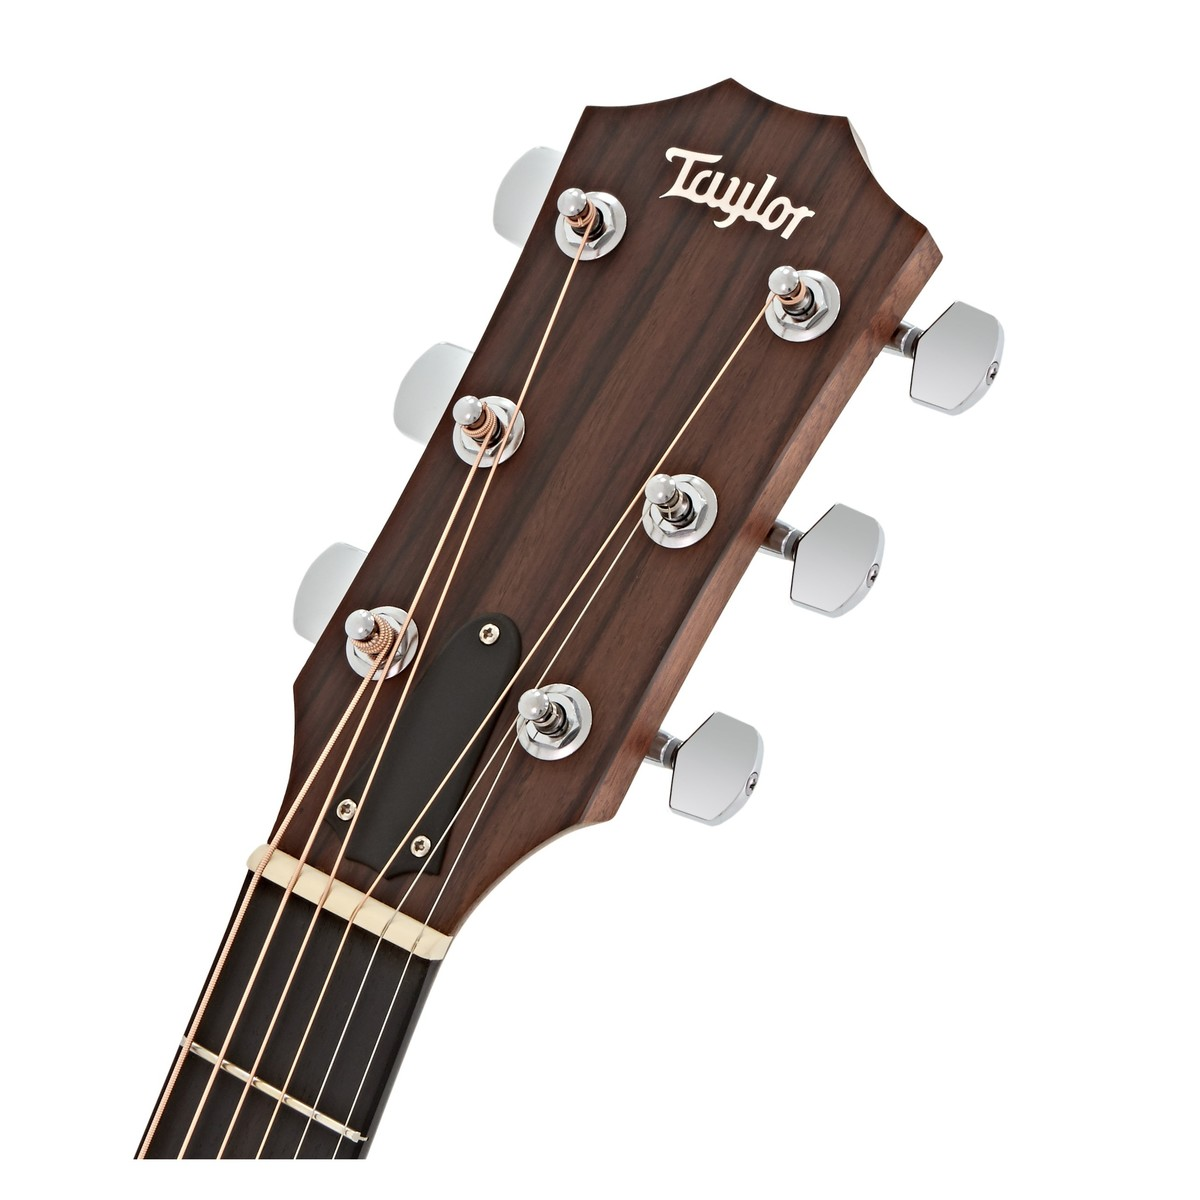 taylor 114ce grand auditorium electro acoustic guitar natural box opened at gear4music. Black Bedroom Furniture Sets. Home Design Ideas